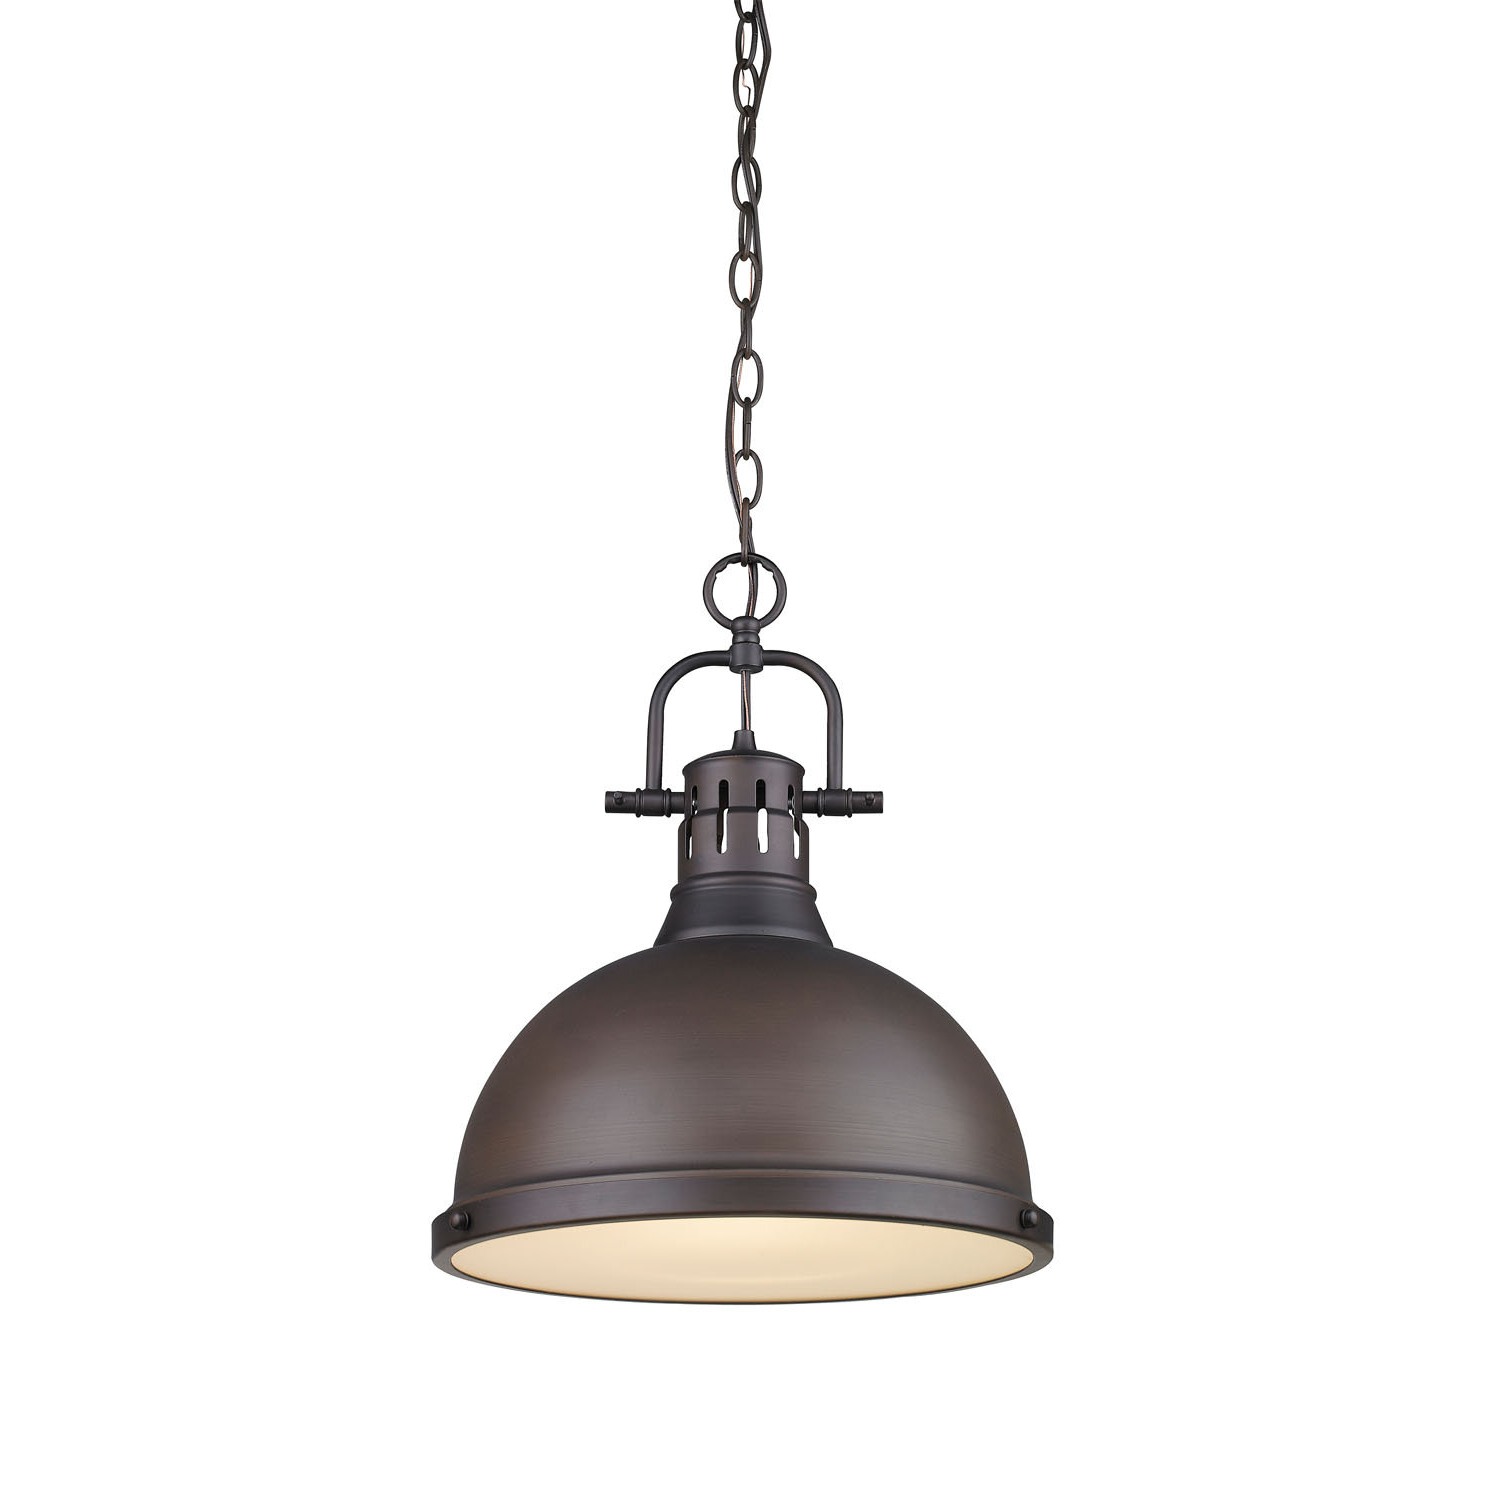 Amara 2 Light Dome Pendants Throughout Fashionable Bodalla 1 Light Dome Pendant (View 12 of 25)